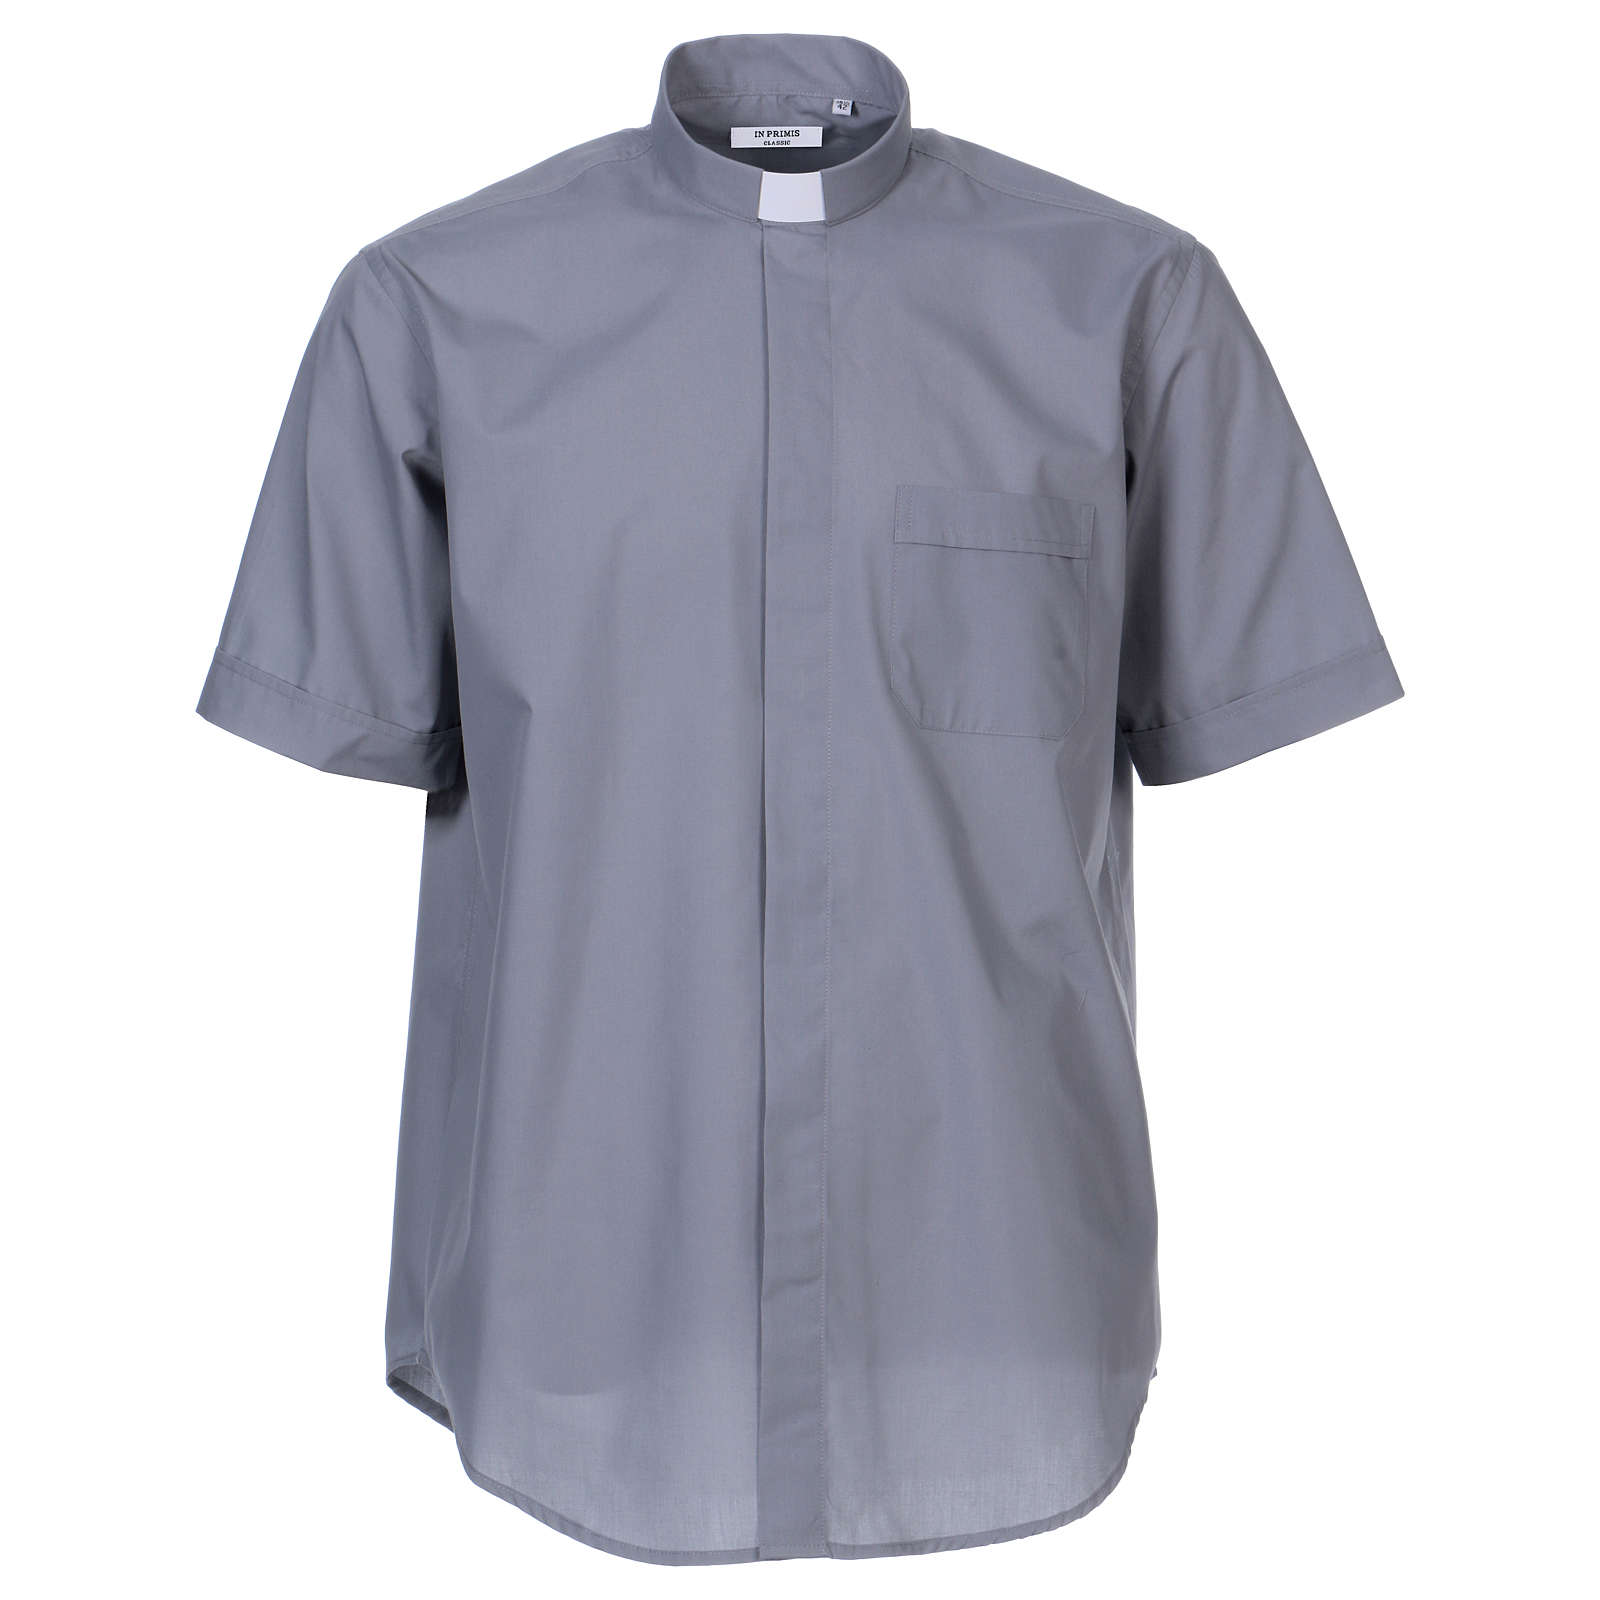 Short Sleeve Clergy Shirt in Light Gray, mixed cotton 4